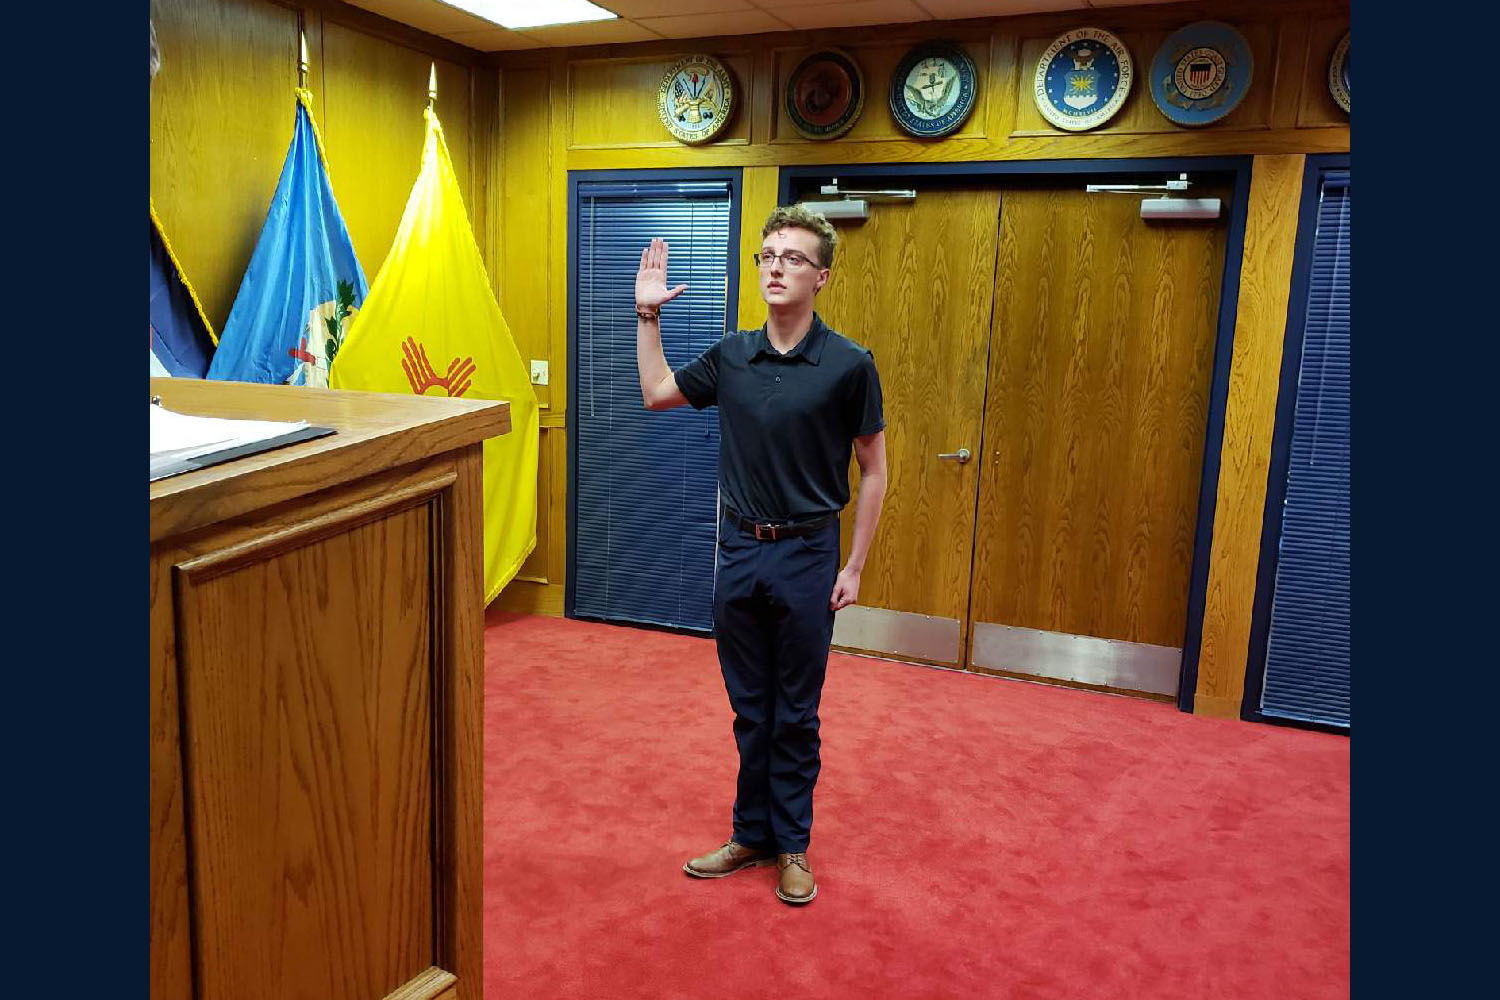 Senior Ian Hughes enlisted in the United States Marine Corps in June.